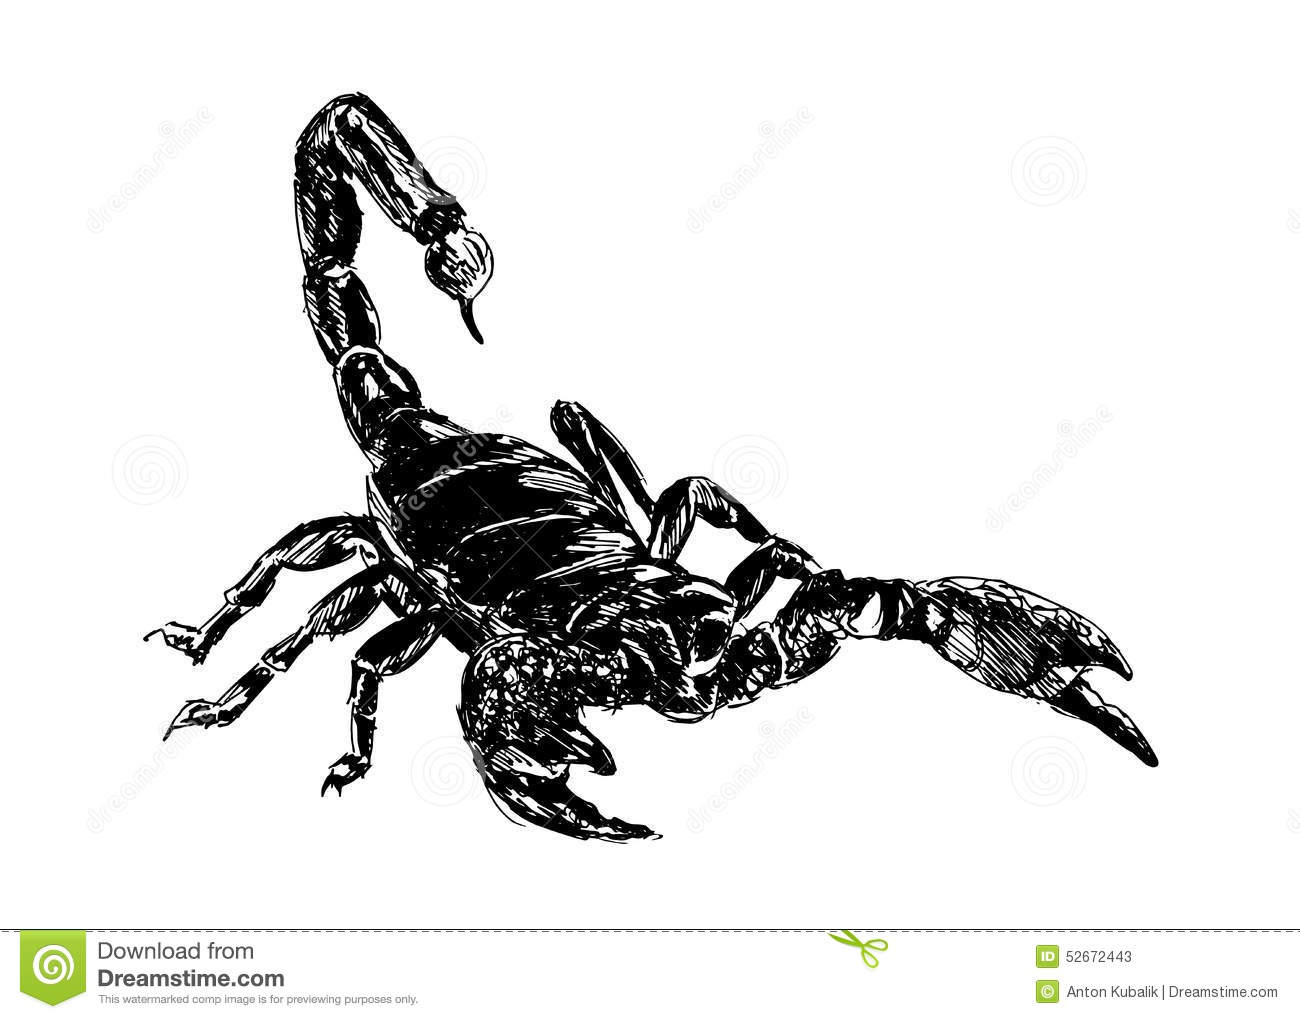 Scorpion De Dessin Main Illustration Vecteur Image